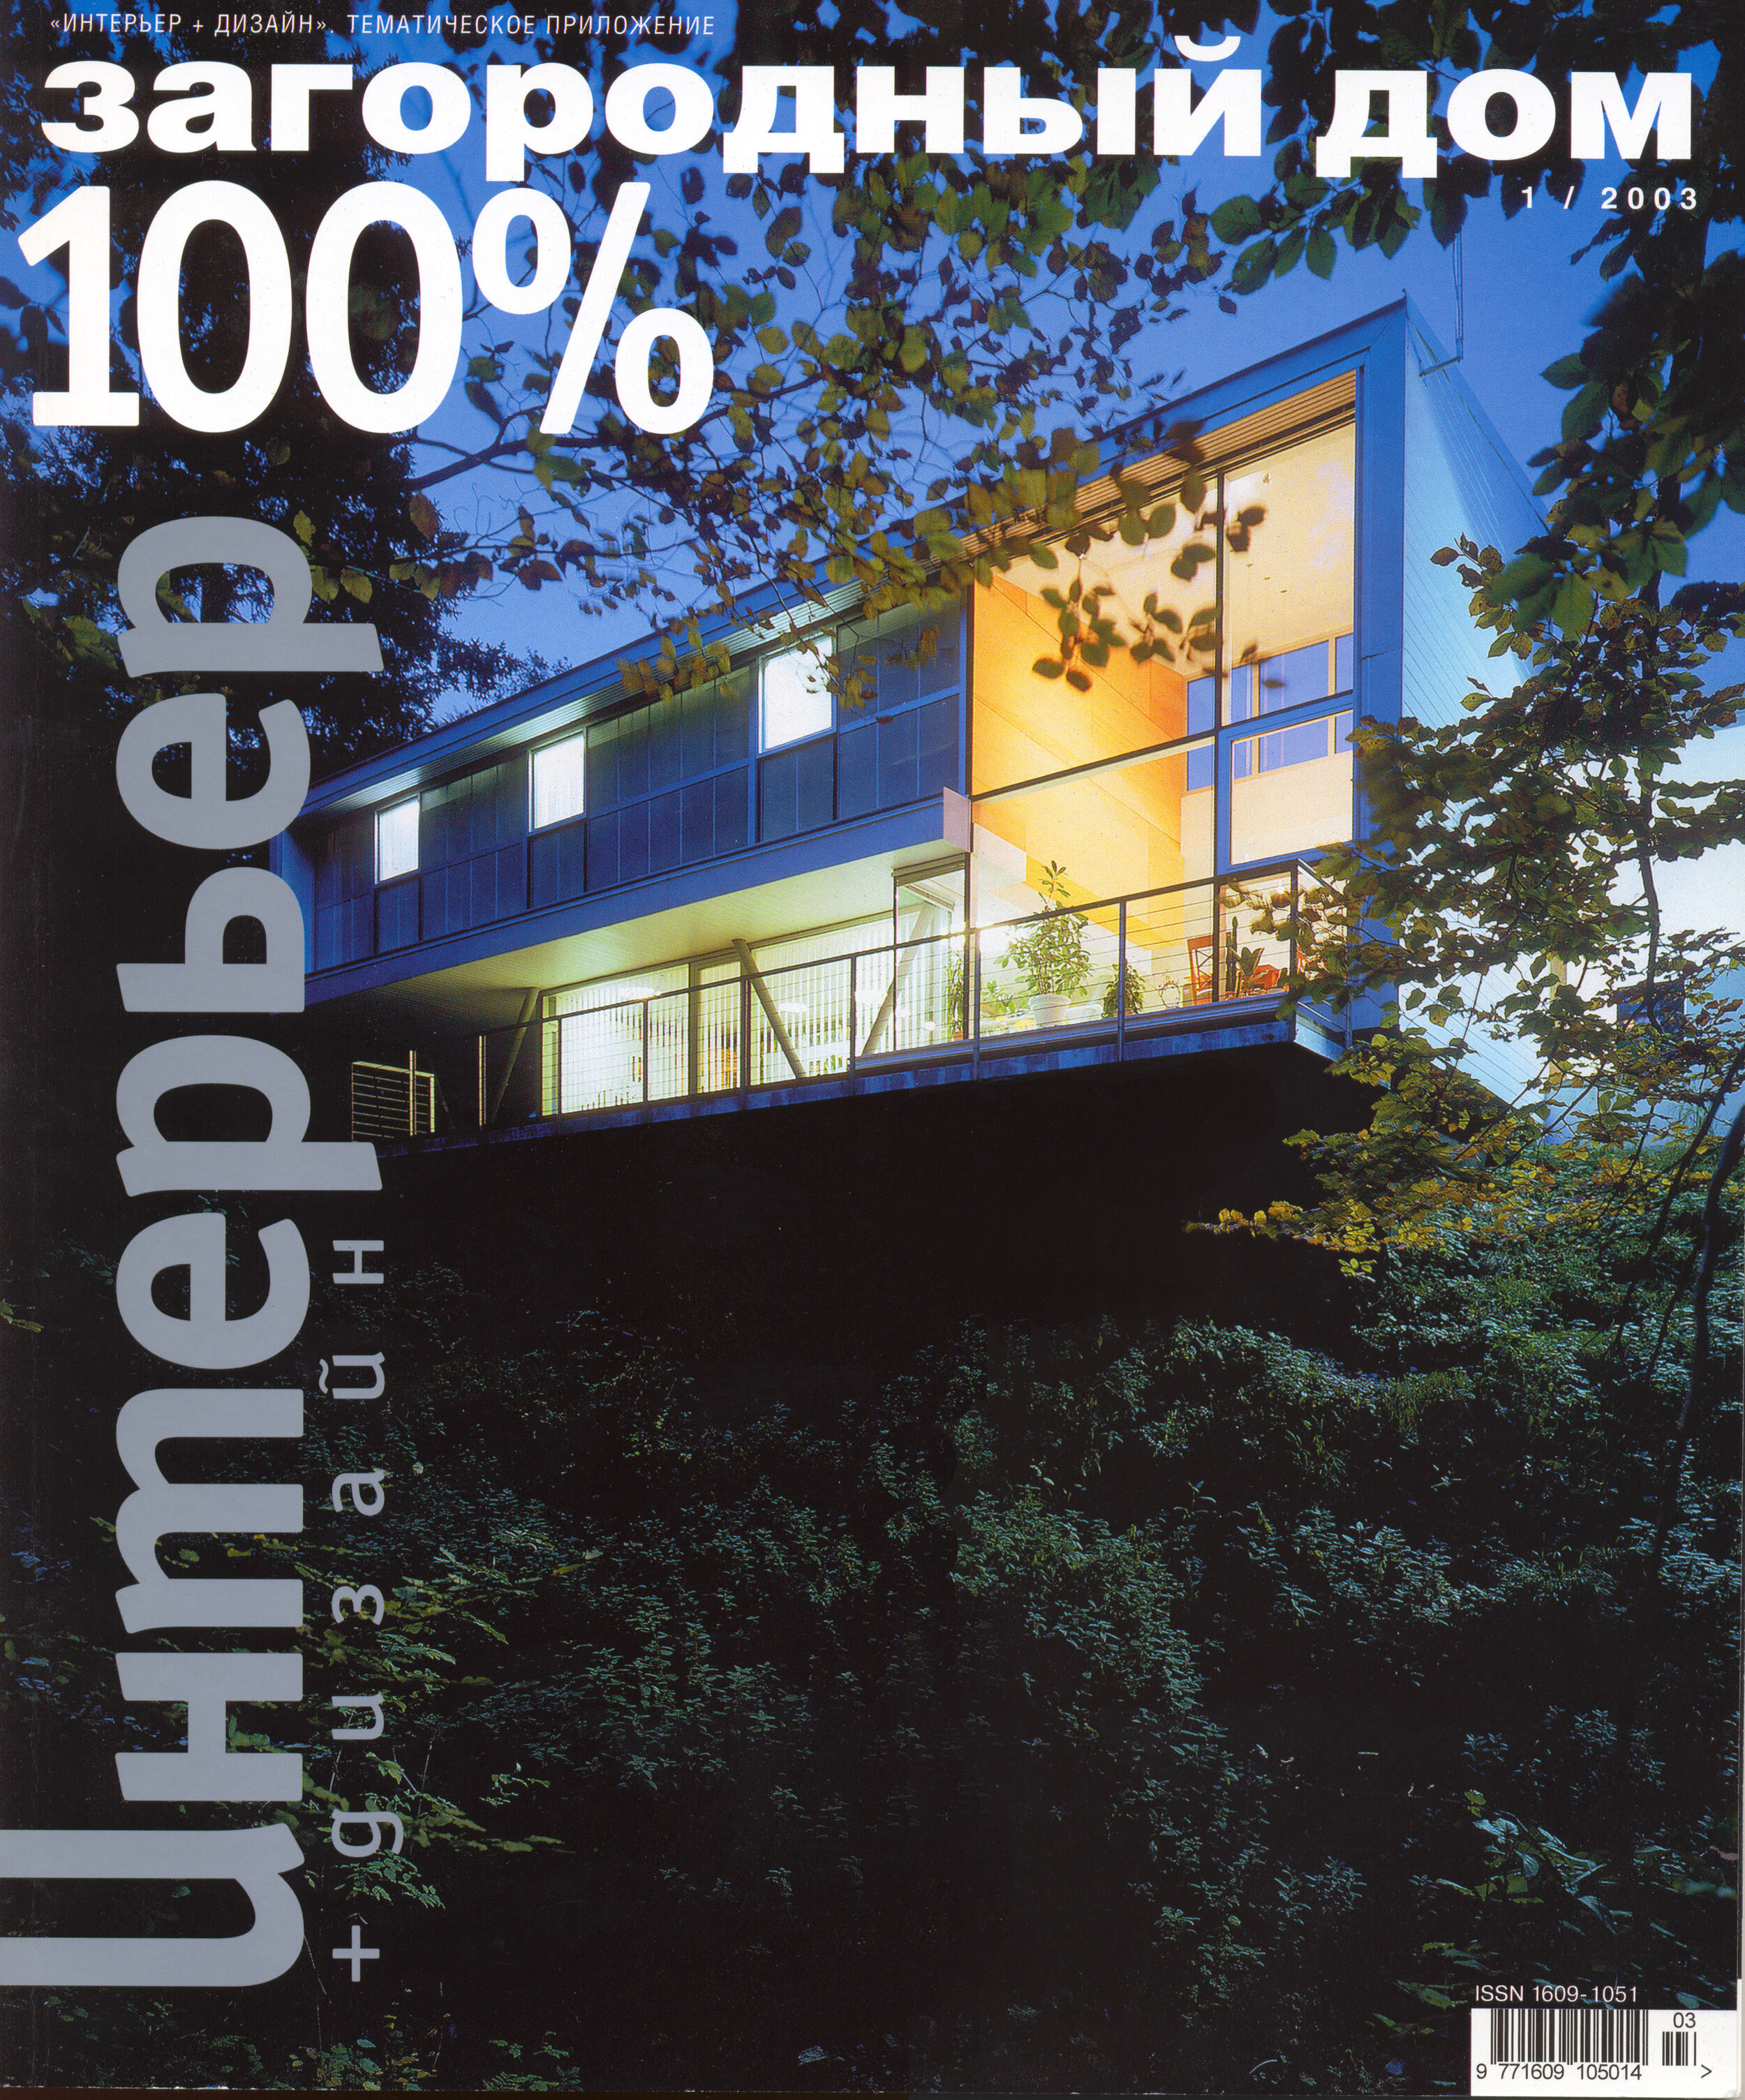 in one go - Cover story in Houses of this world